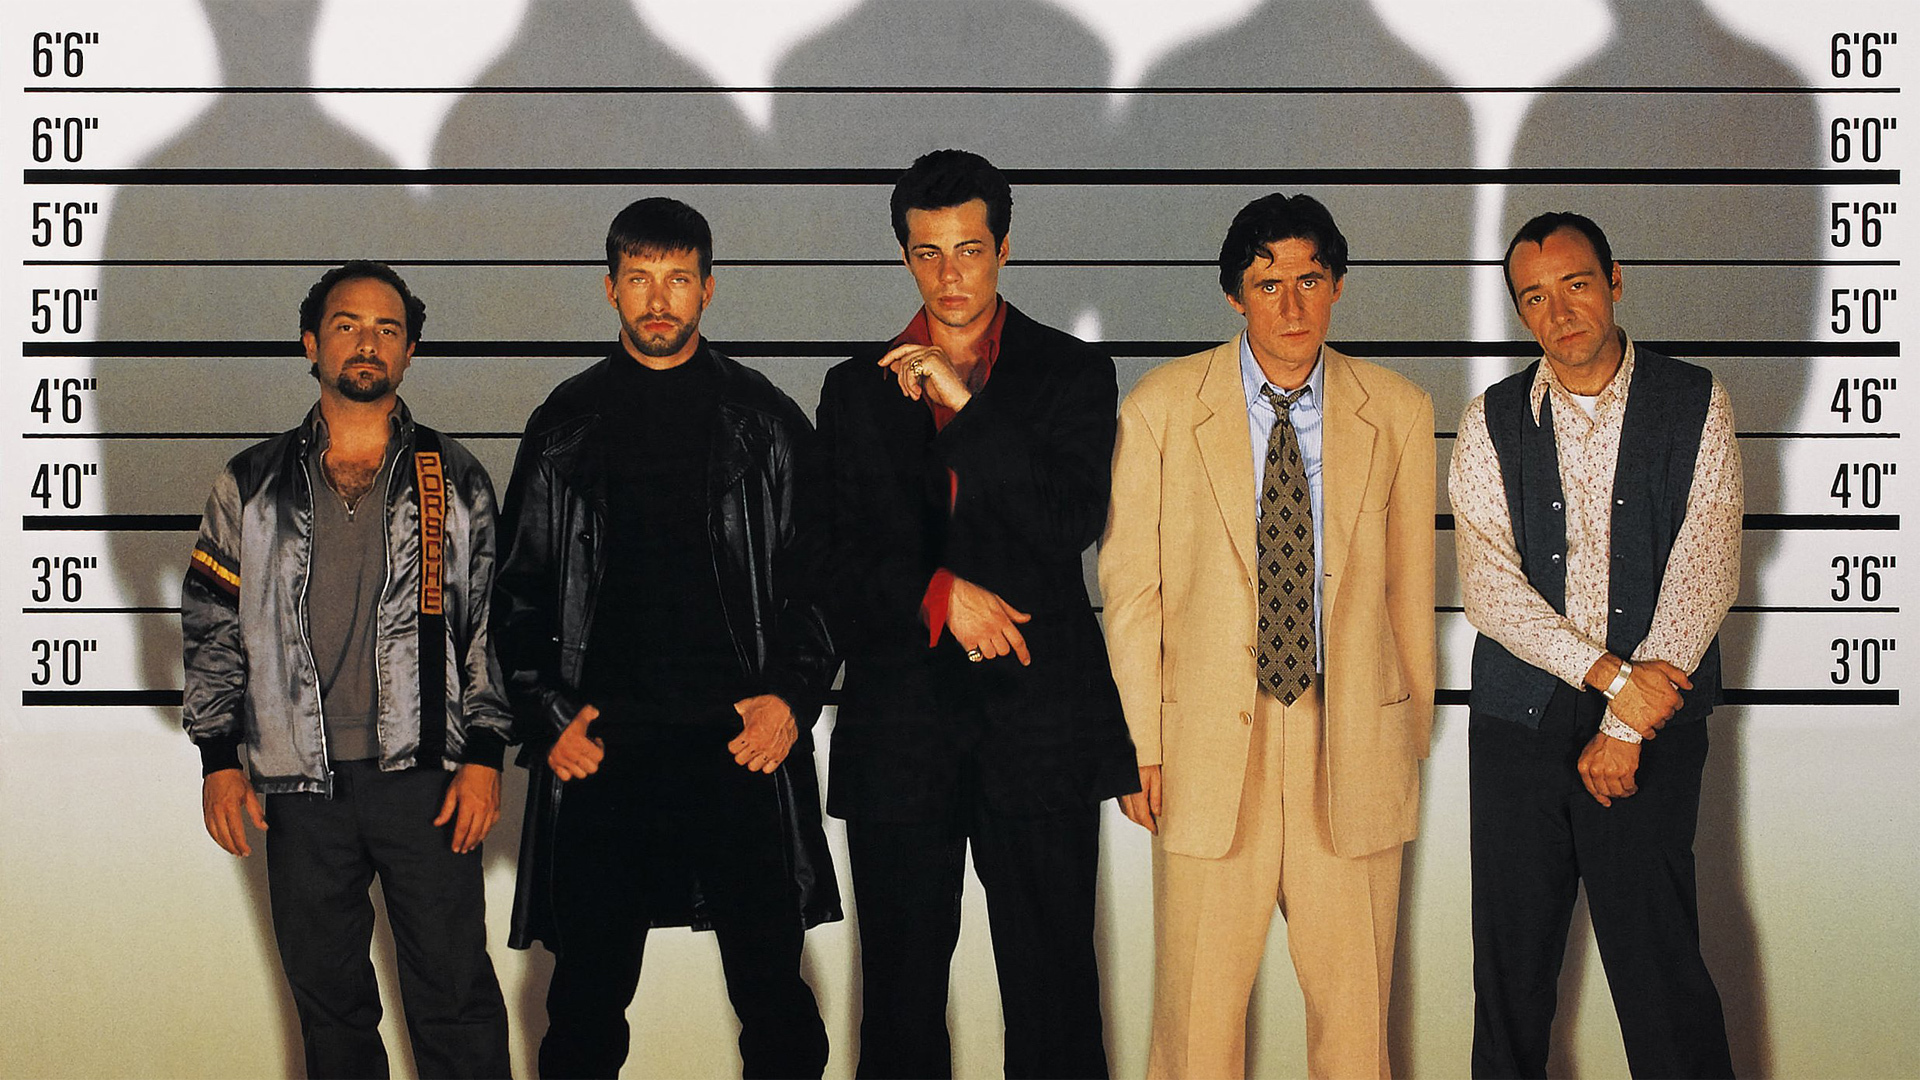 1920x1080 > The Usual Suspects Wallpapers